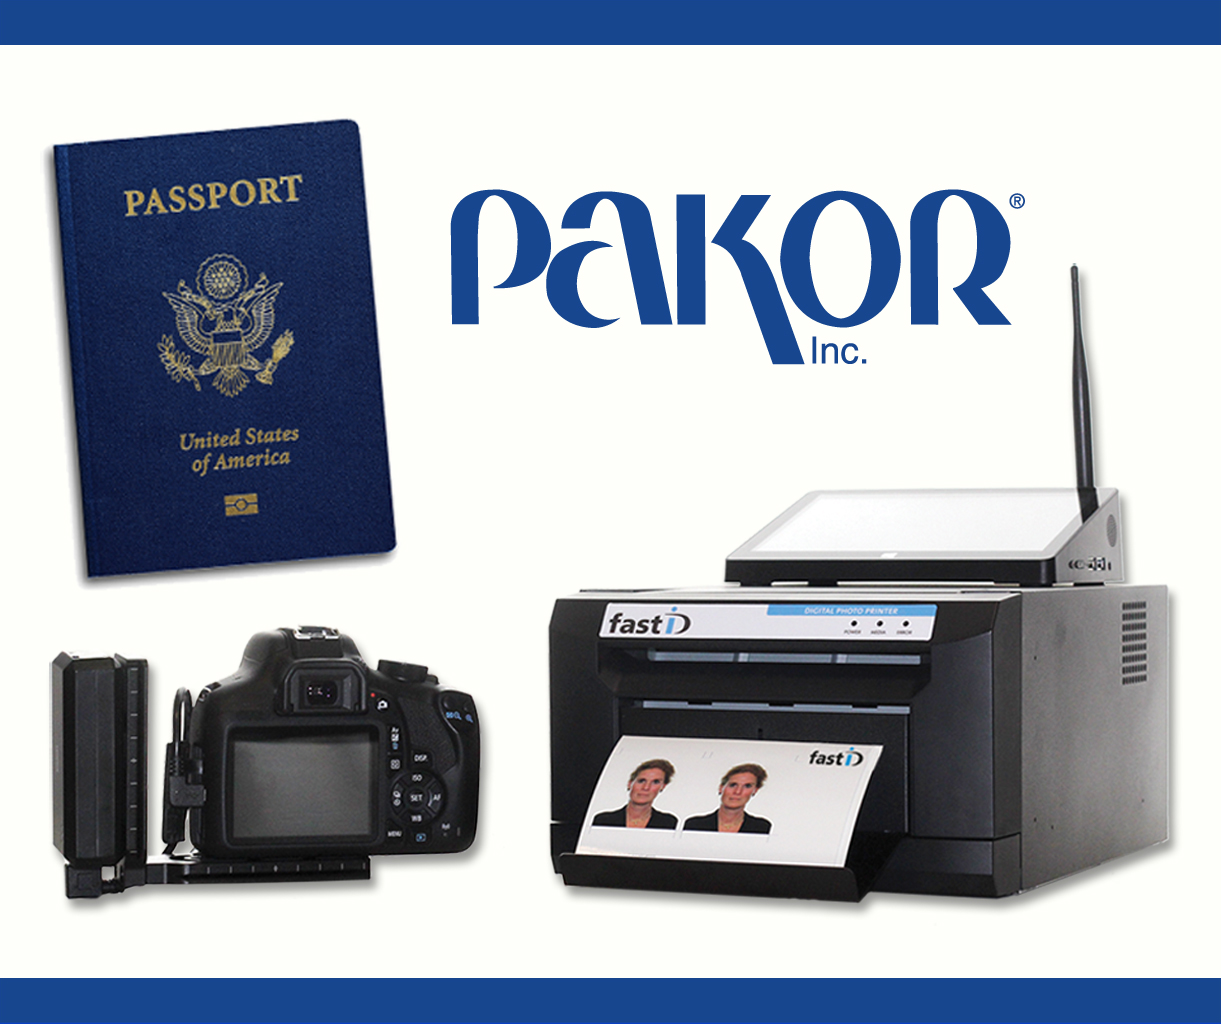 Latest in Passport Photography Revealed by Pakor, Inc.